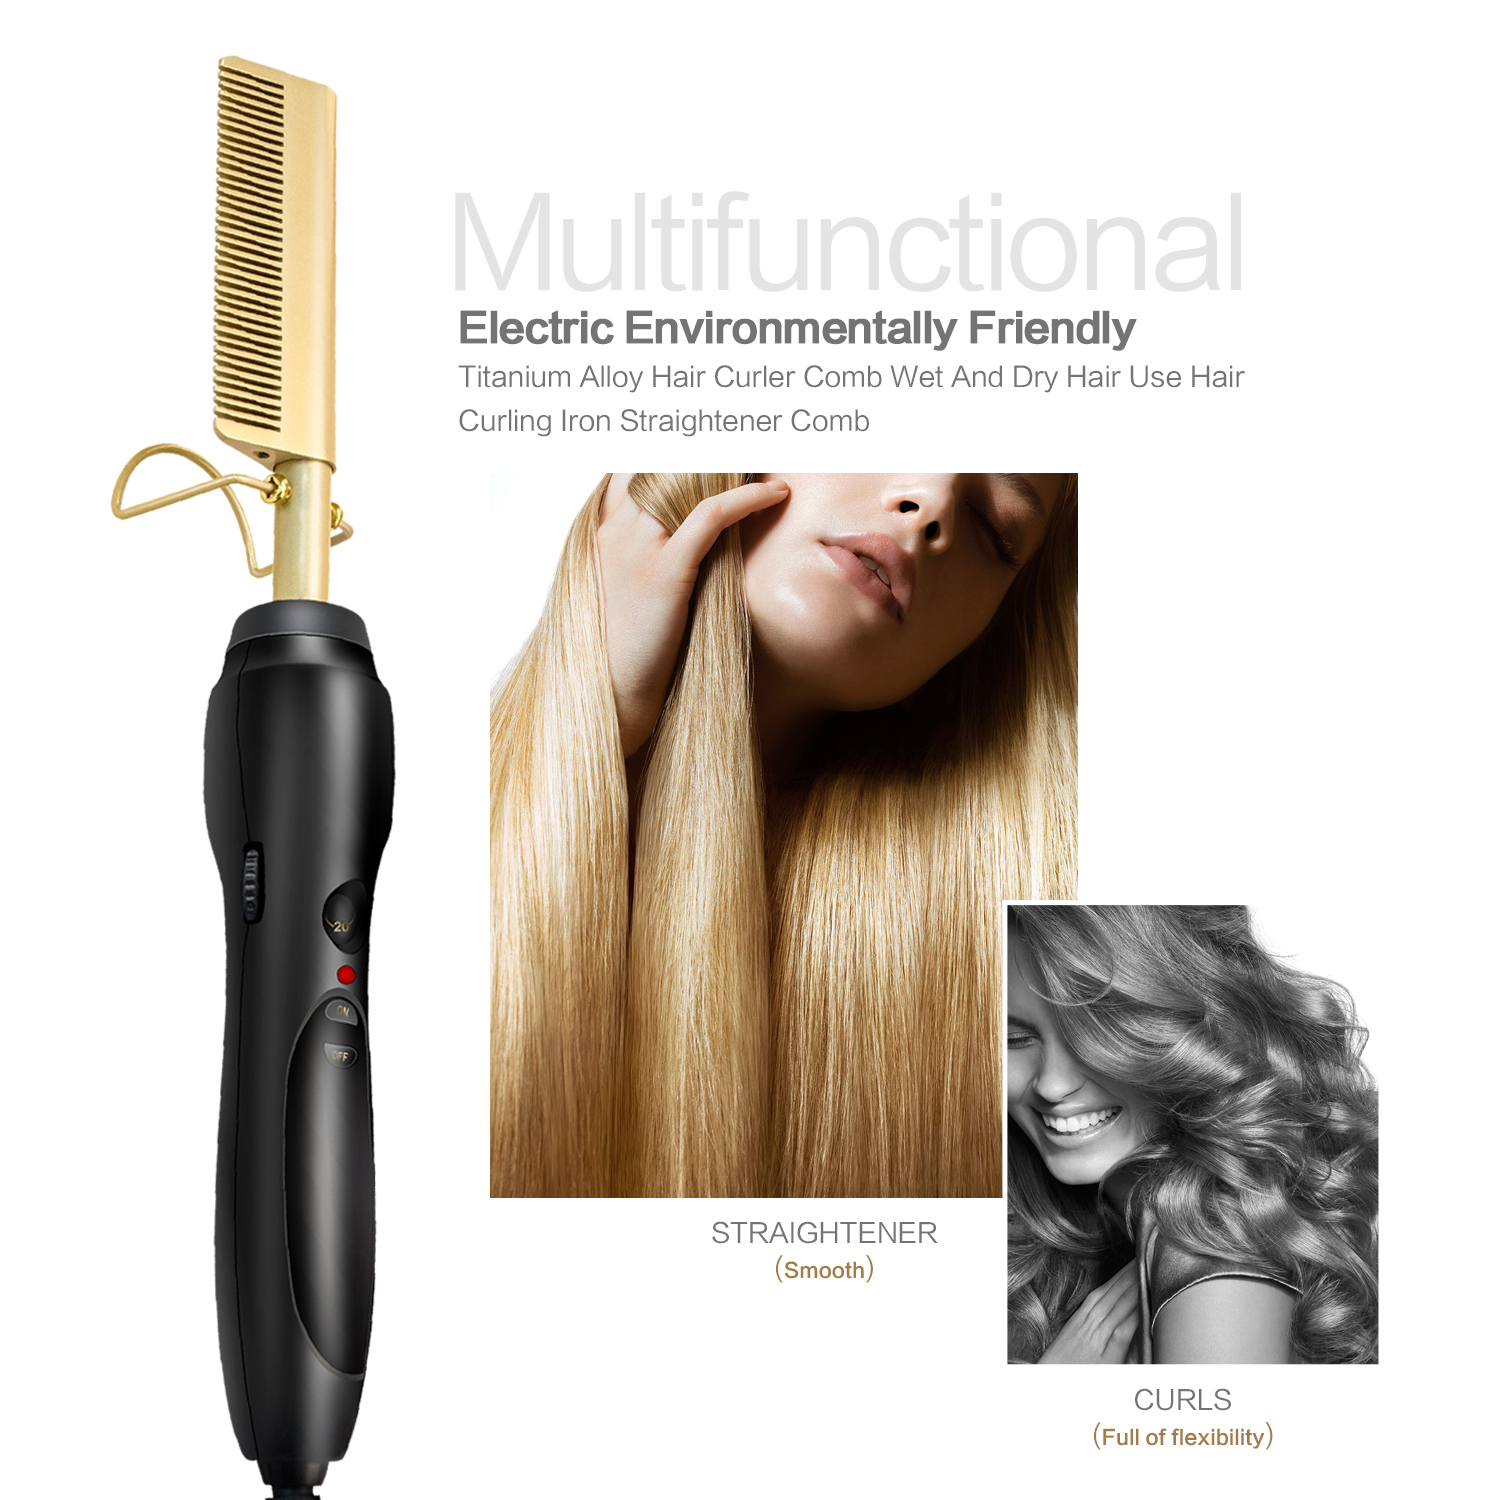 2019 Electric Environmentally Friendly Titanium Alloy Hair Curler Comb Wet And Dry Hair Use Hair Curling Iron Straightener Comb